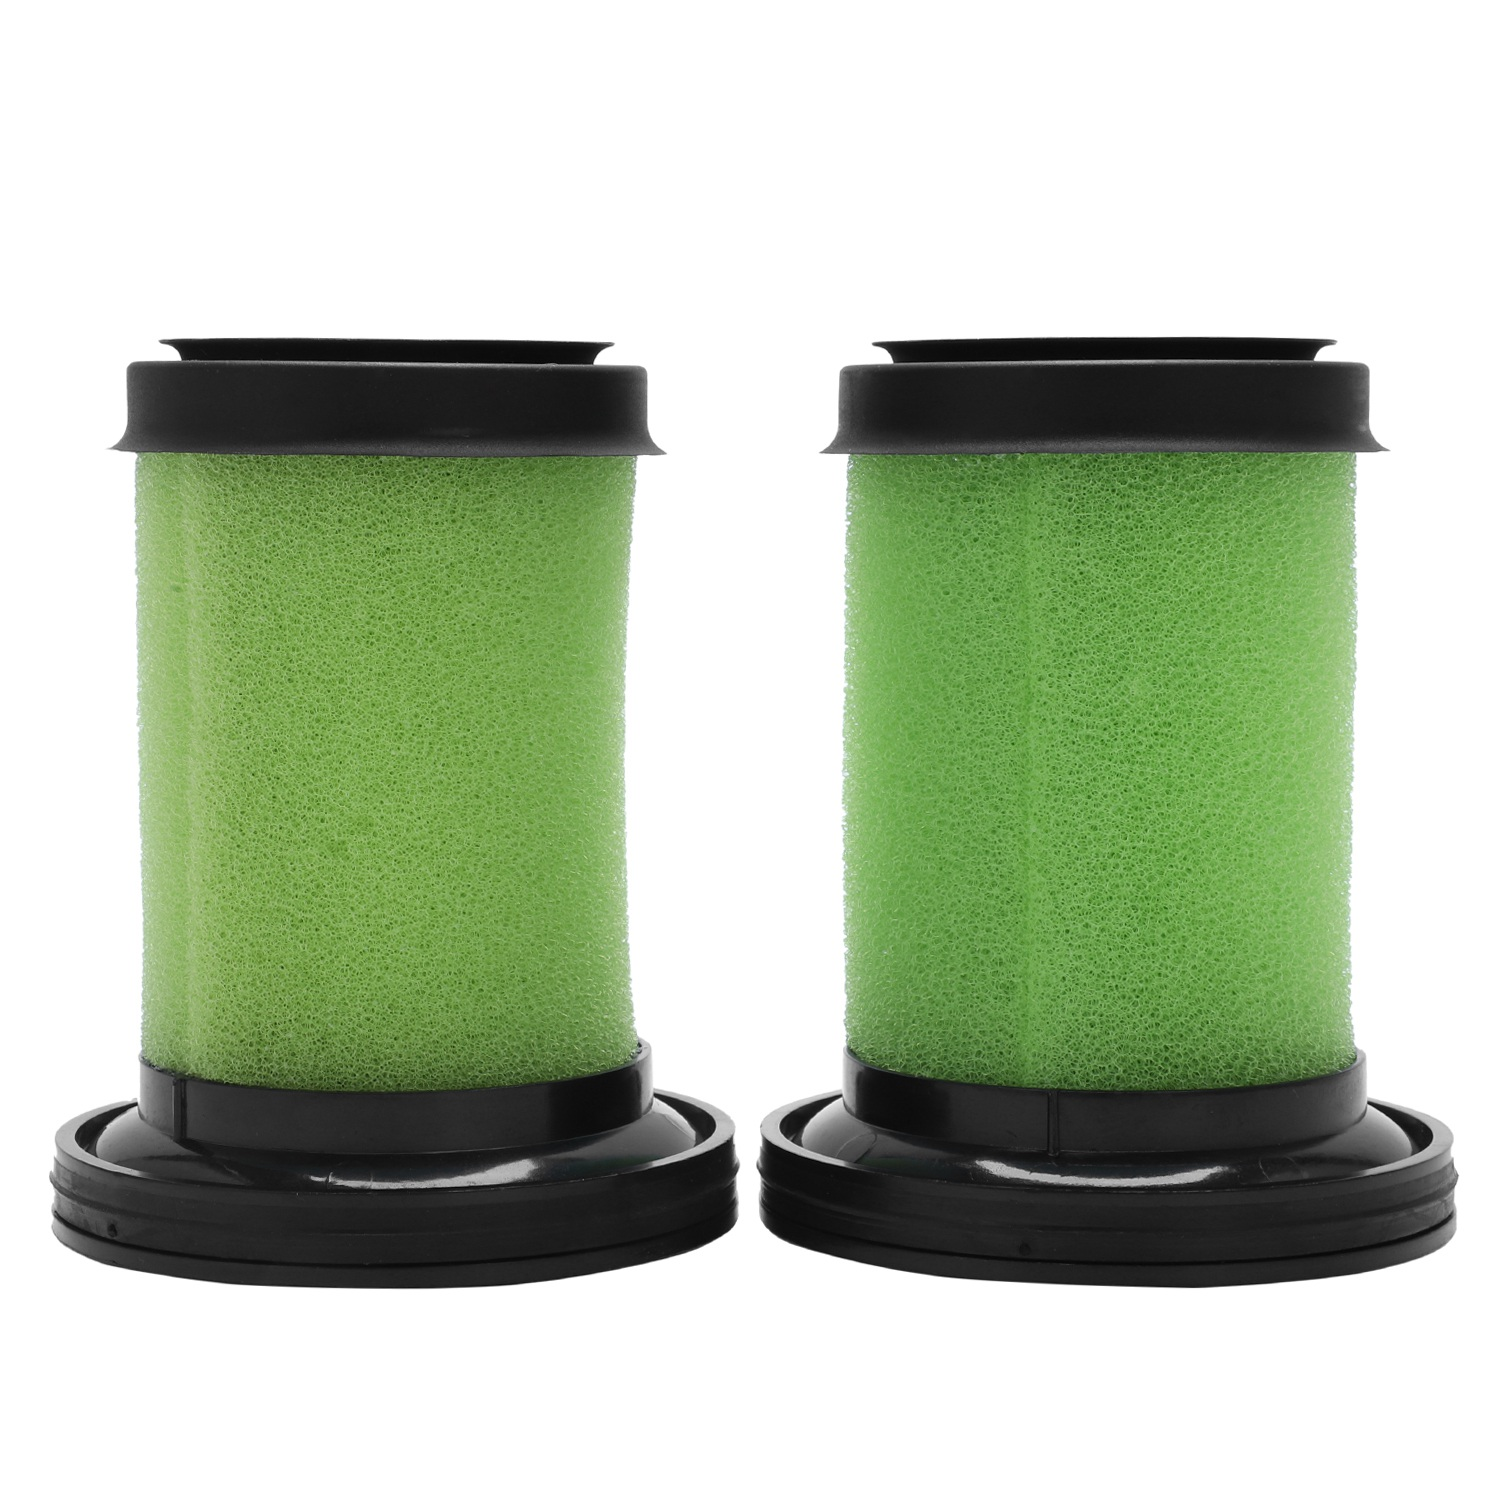 Washable Foam Filters for GTech Multi Cordless Vacuum Cleaner (Green, Pack of 2)